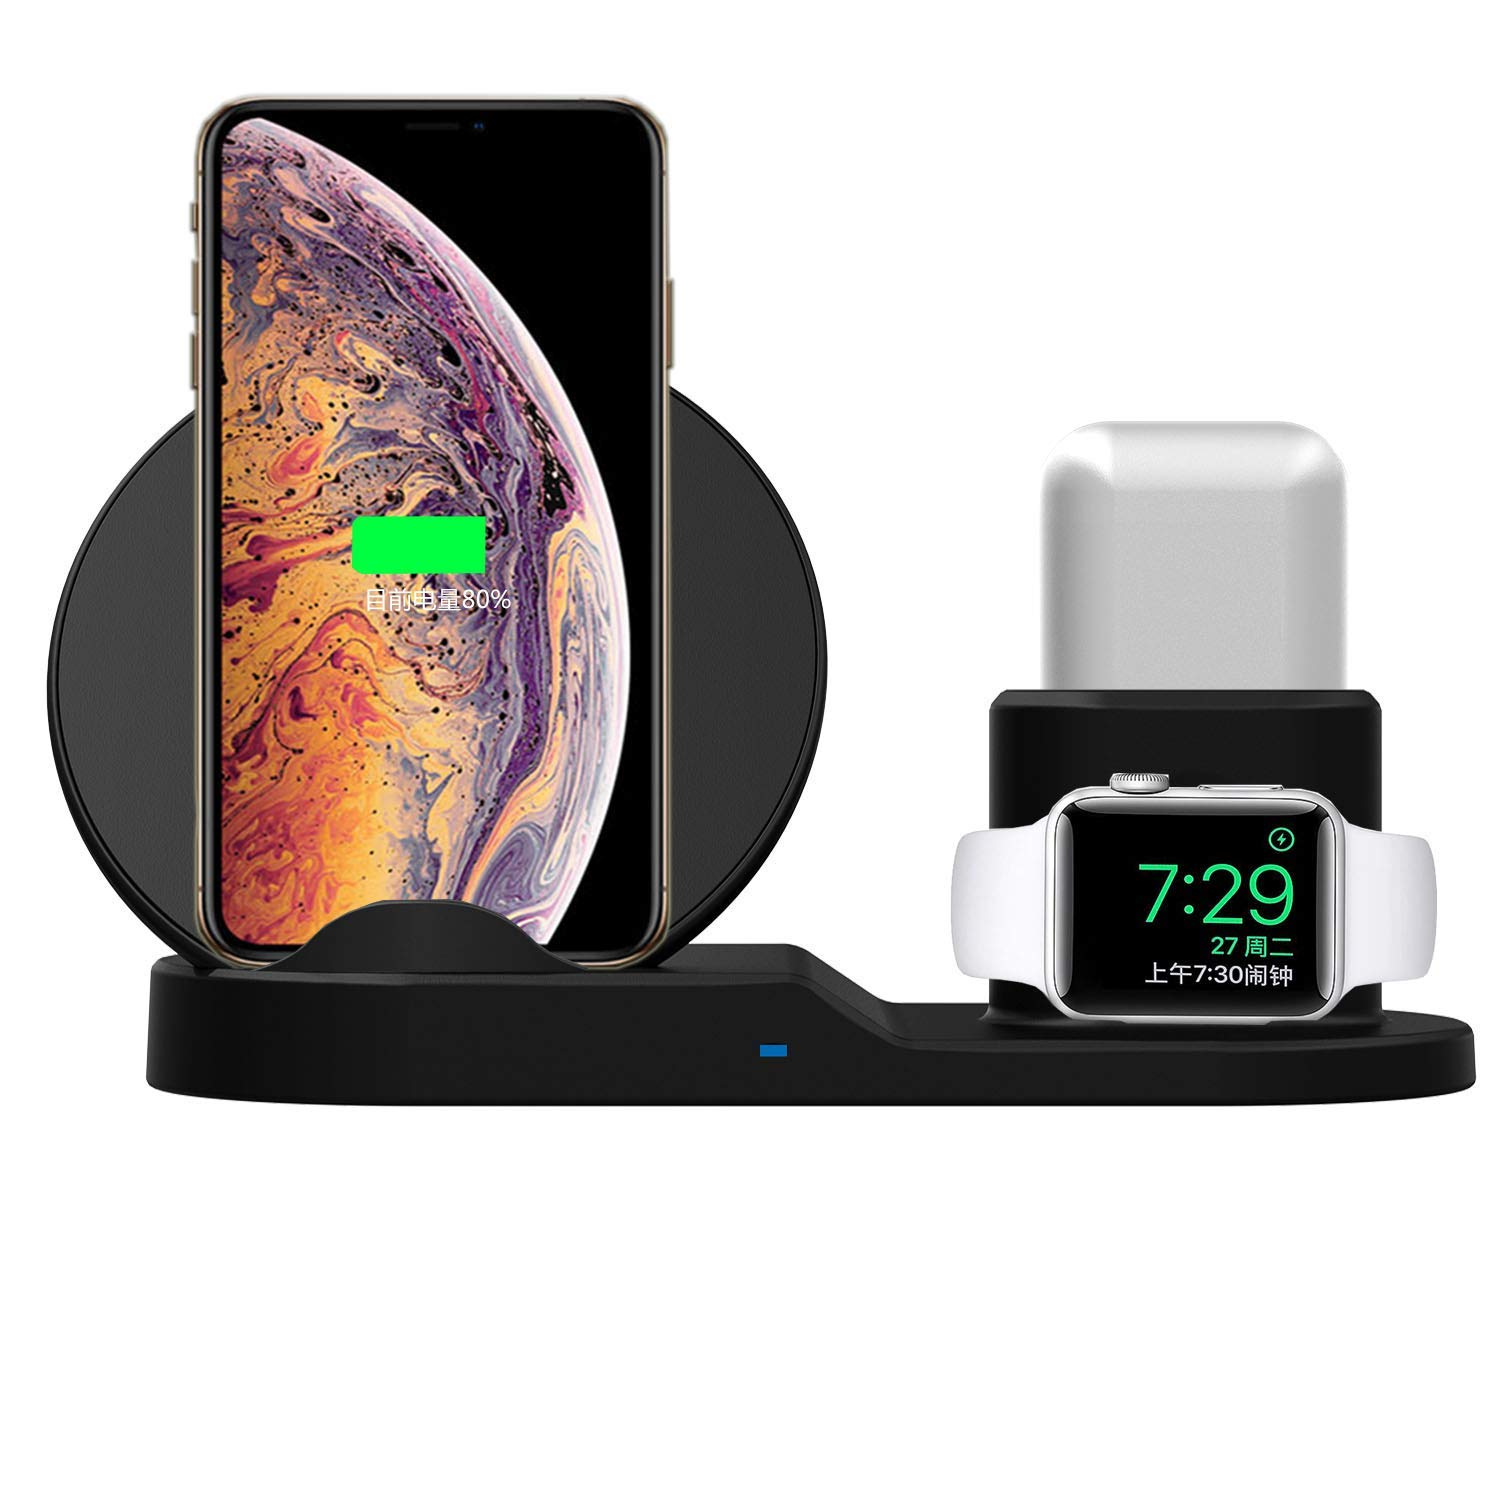 Wireless Charger 3-in-1,Wireless Charging Stand Compatible with iPhone 8/8 Plus/X/Xs Max/XR/Samsung S10 /S9+/Note 8,Wireless Charging Station Compatible with iwatch Series 1/2/3/4 +Airpods by TOOBOSS